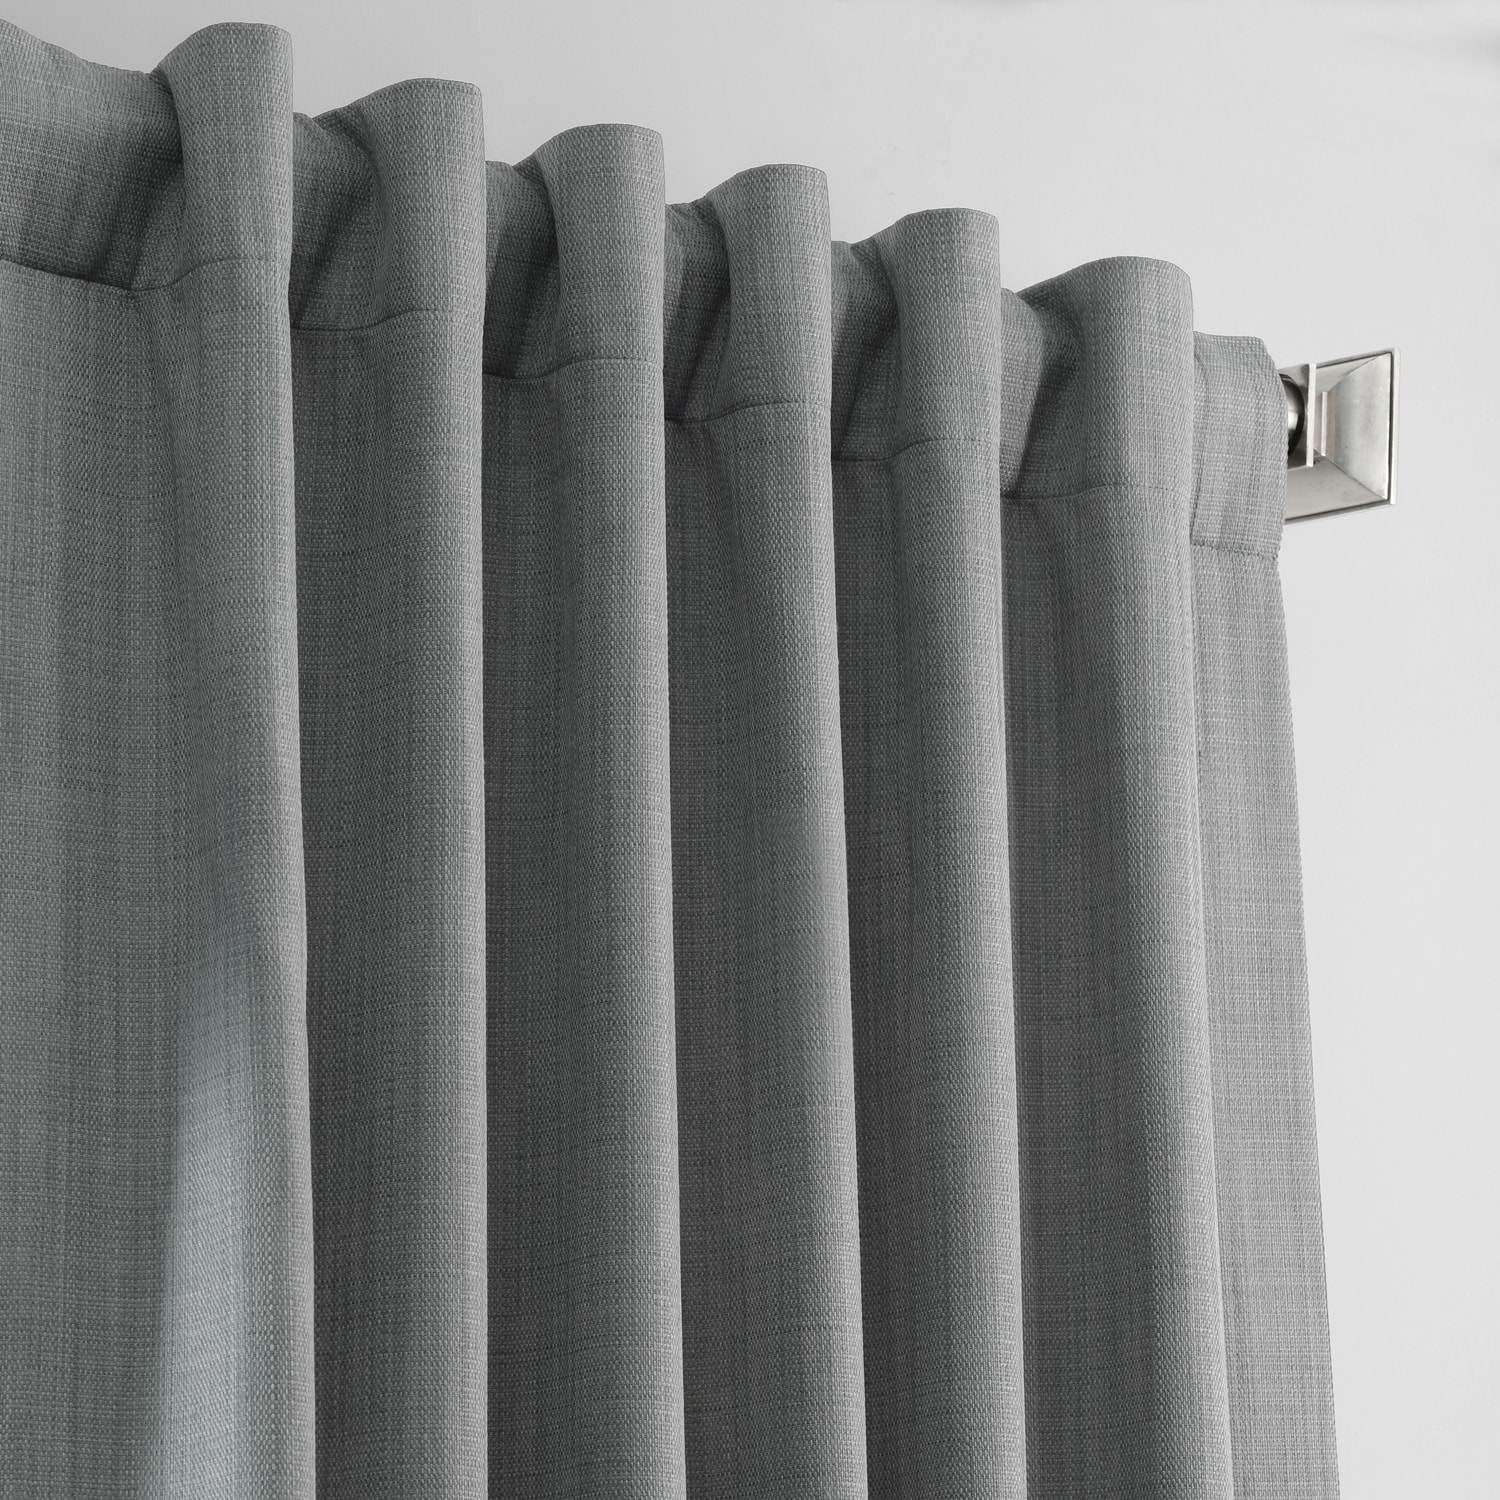 Pebble Grey Italian Textured Faux Linen Hotel Blackout Curtain